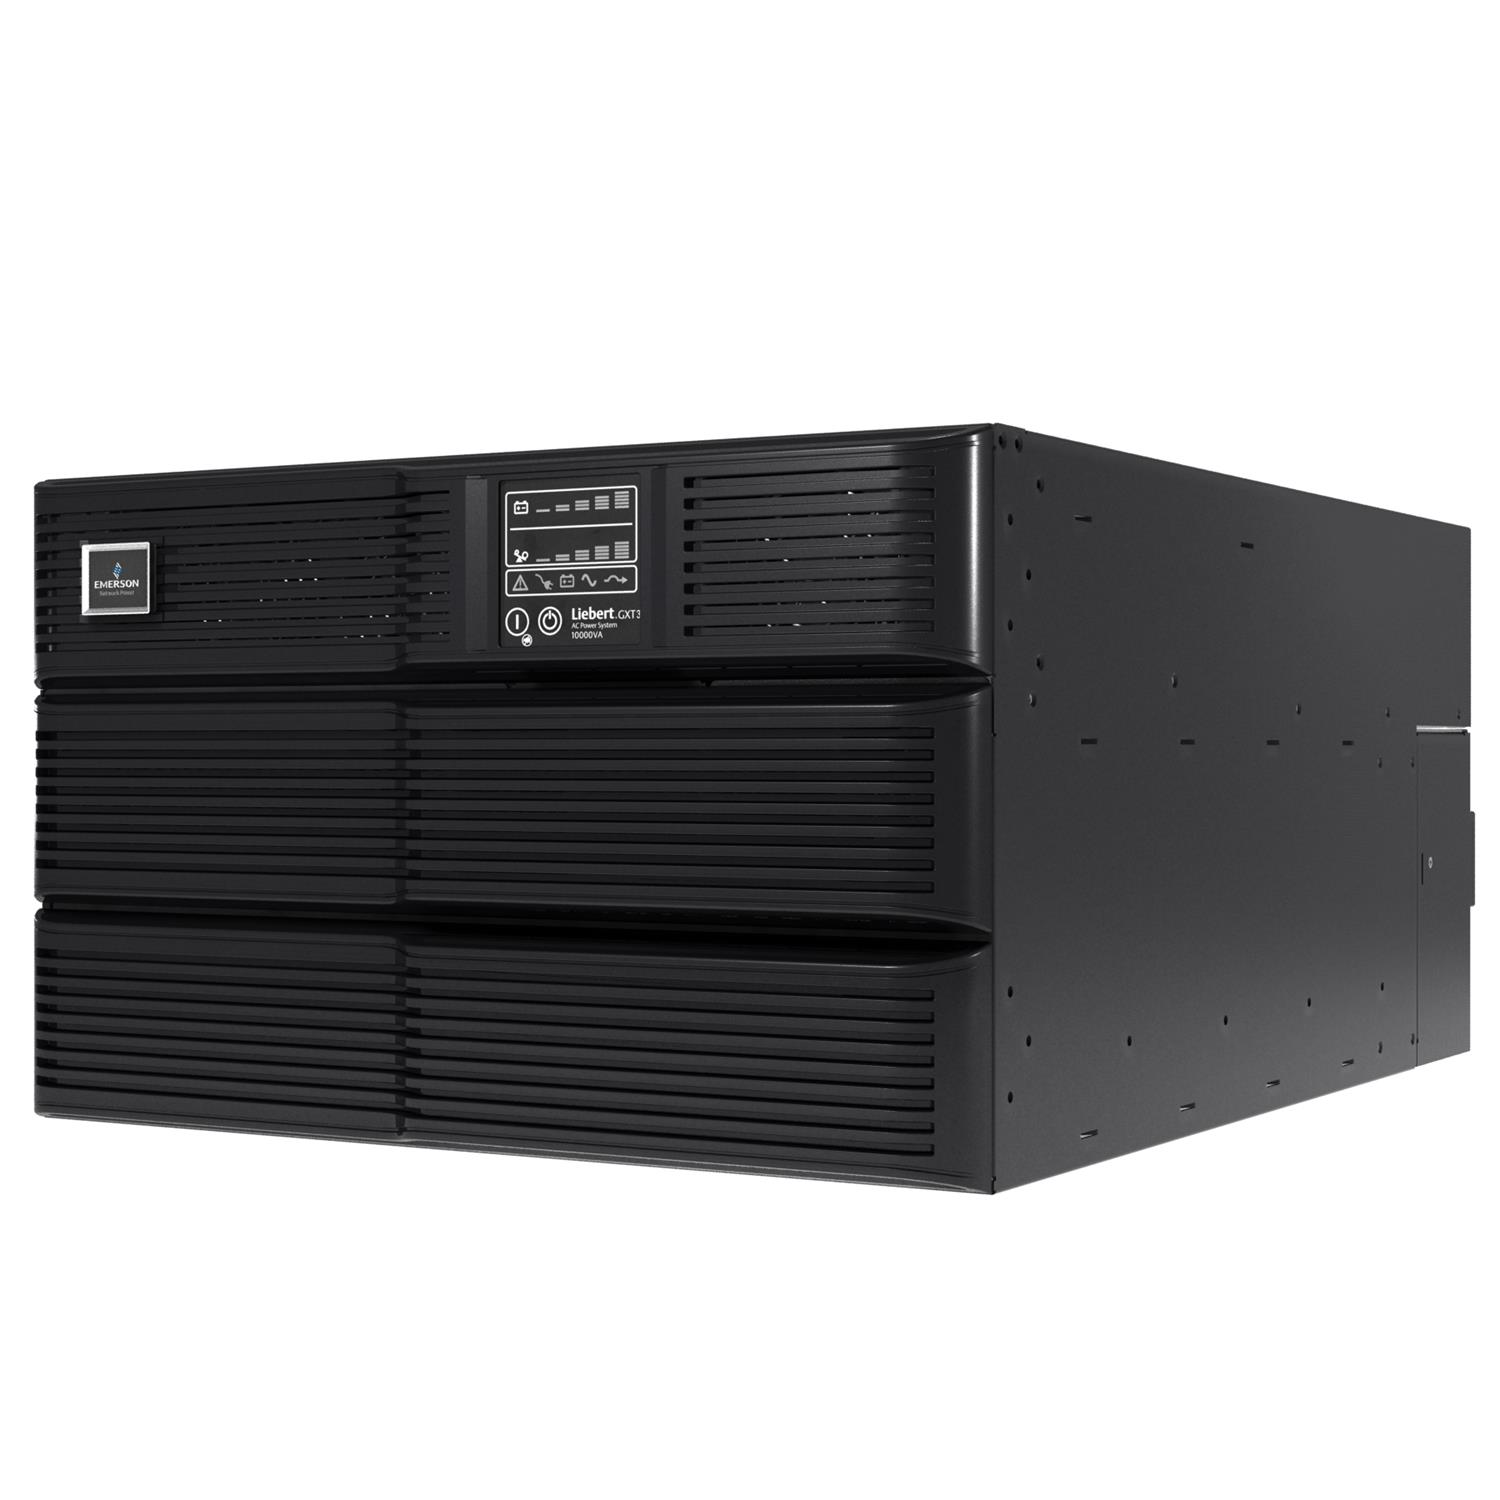 UPS EMERSON LIEBERT GXT3-10000RT230 10000VA